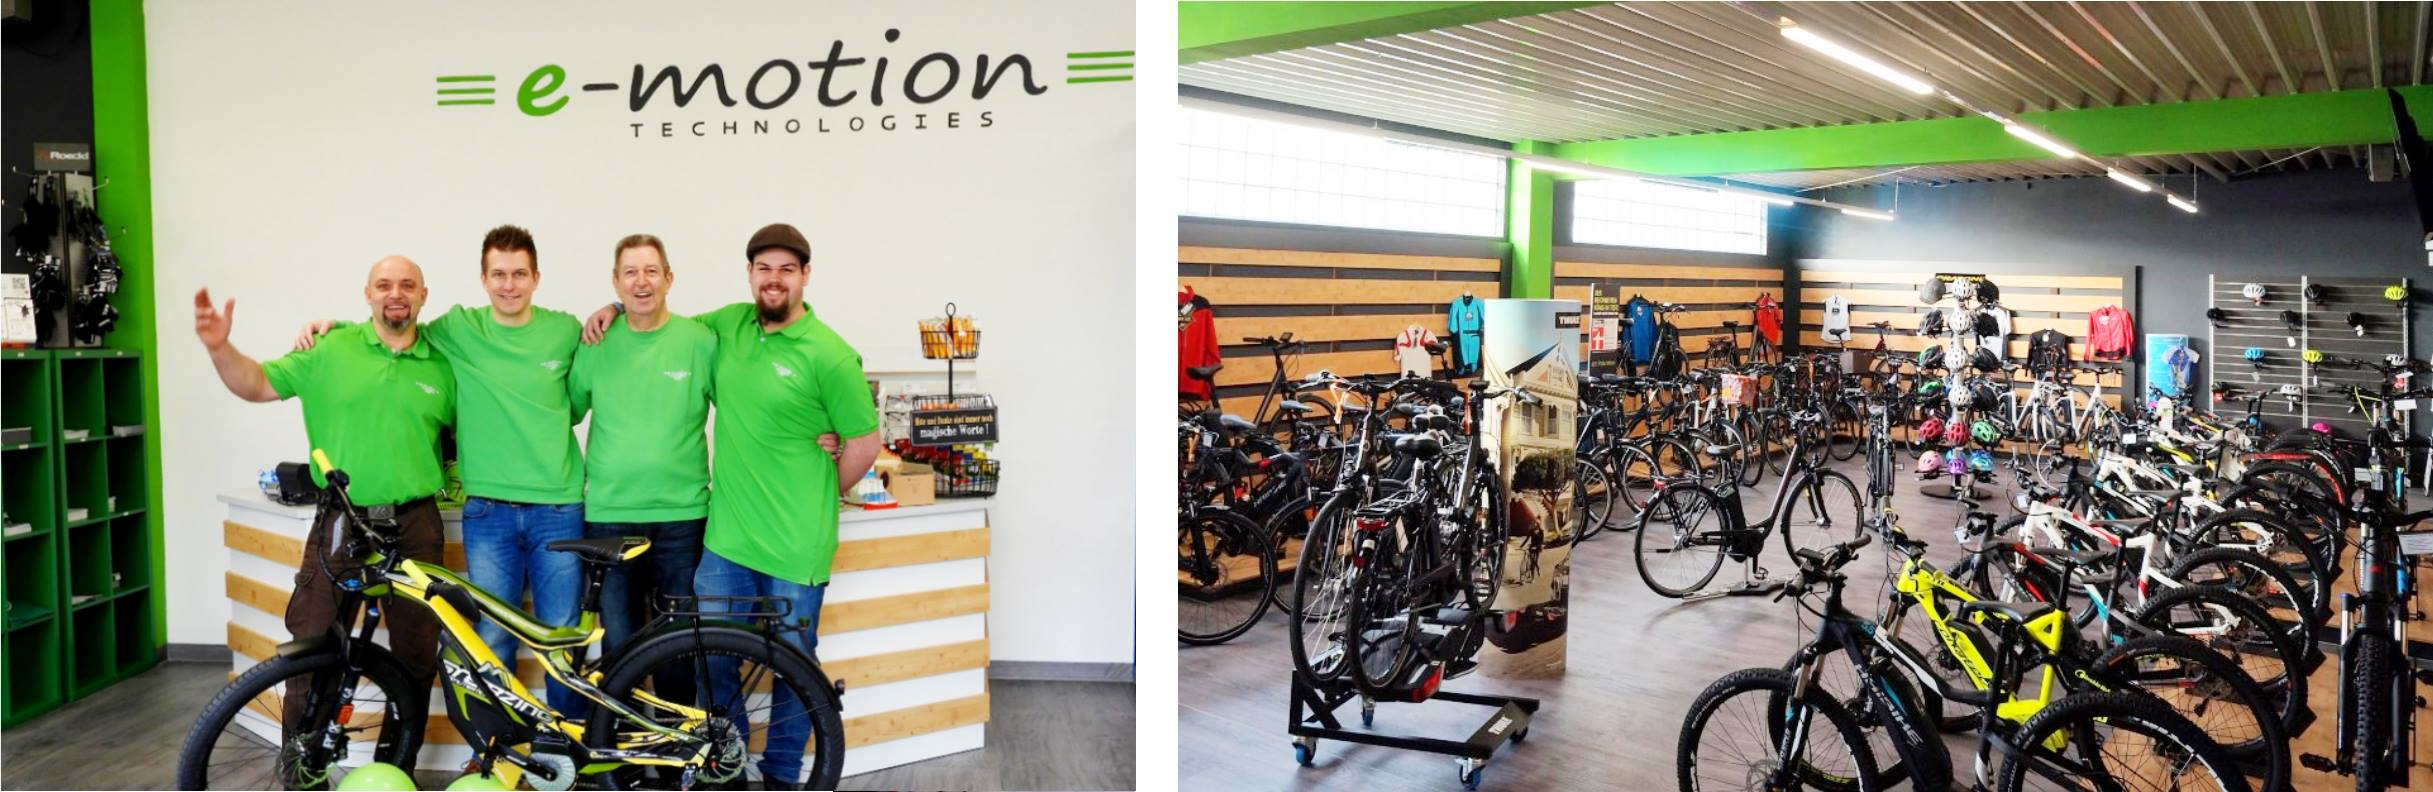 e-motion e-Bike Welt Harz